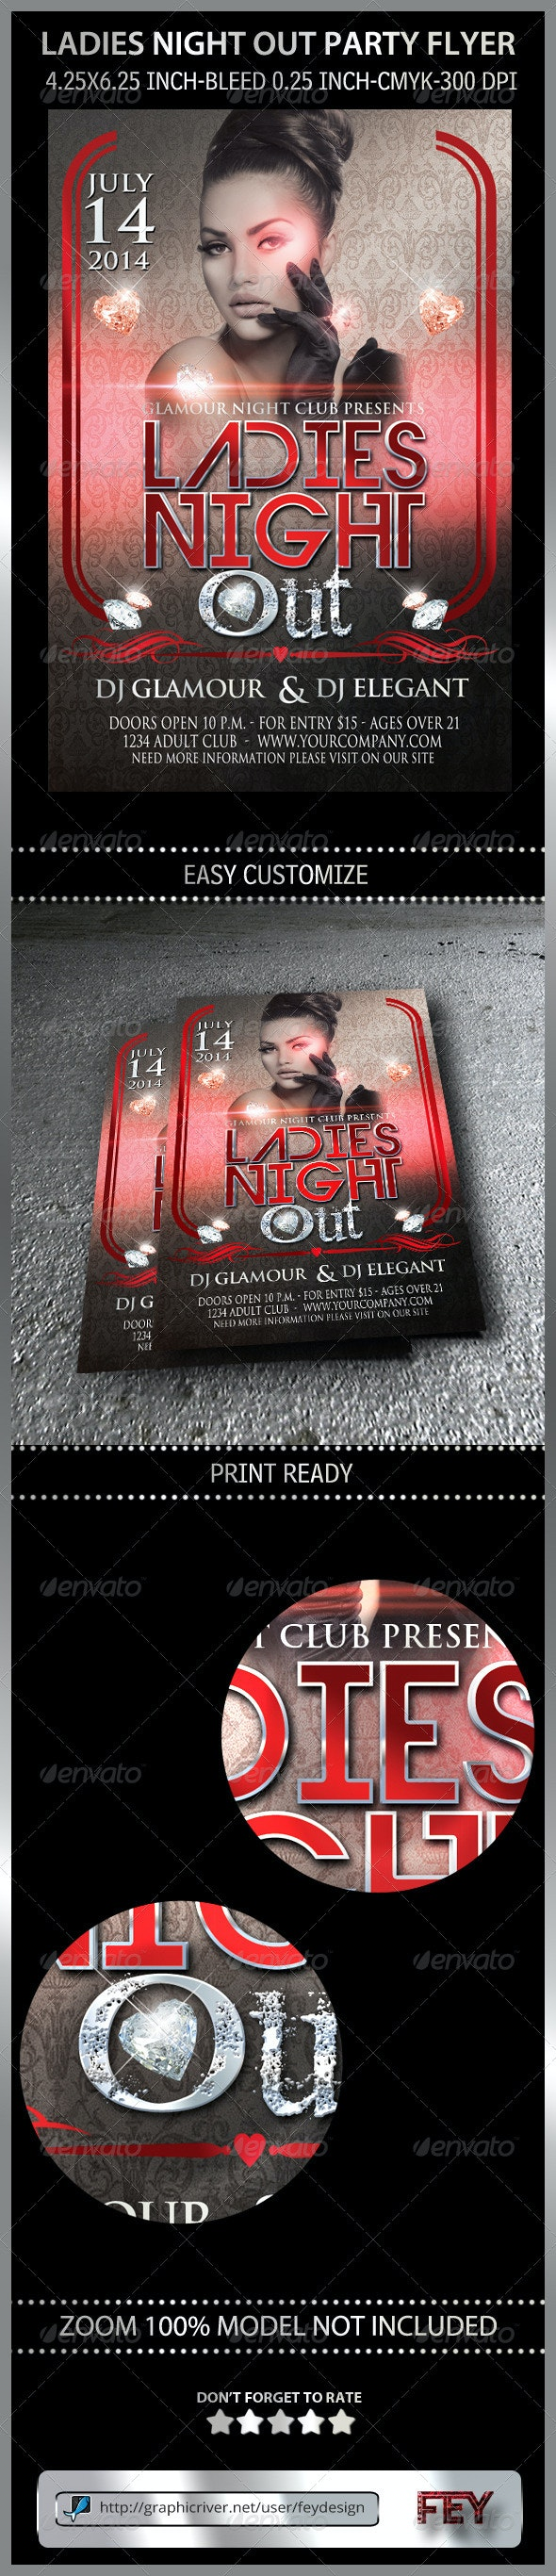 Ladies Night Out Party Flyer - Clubs & Parties Events